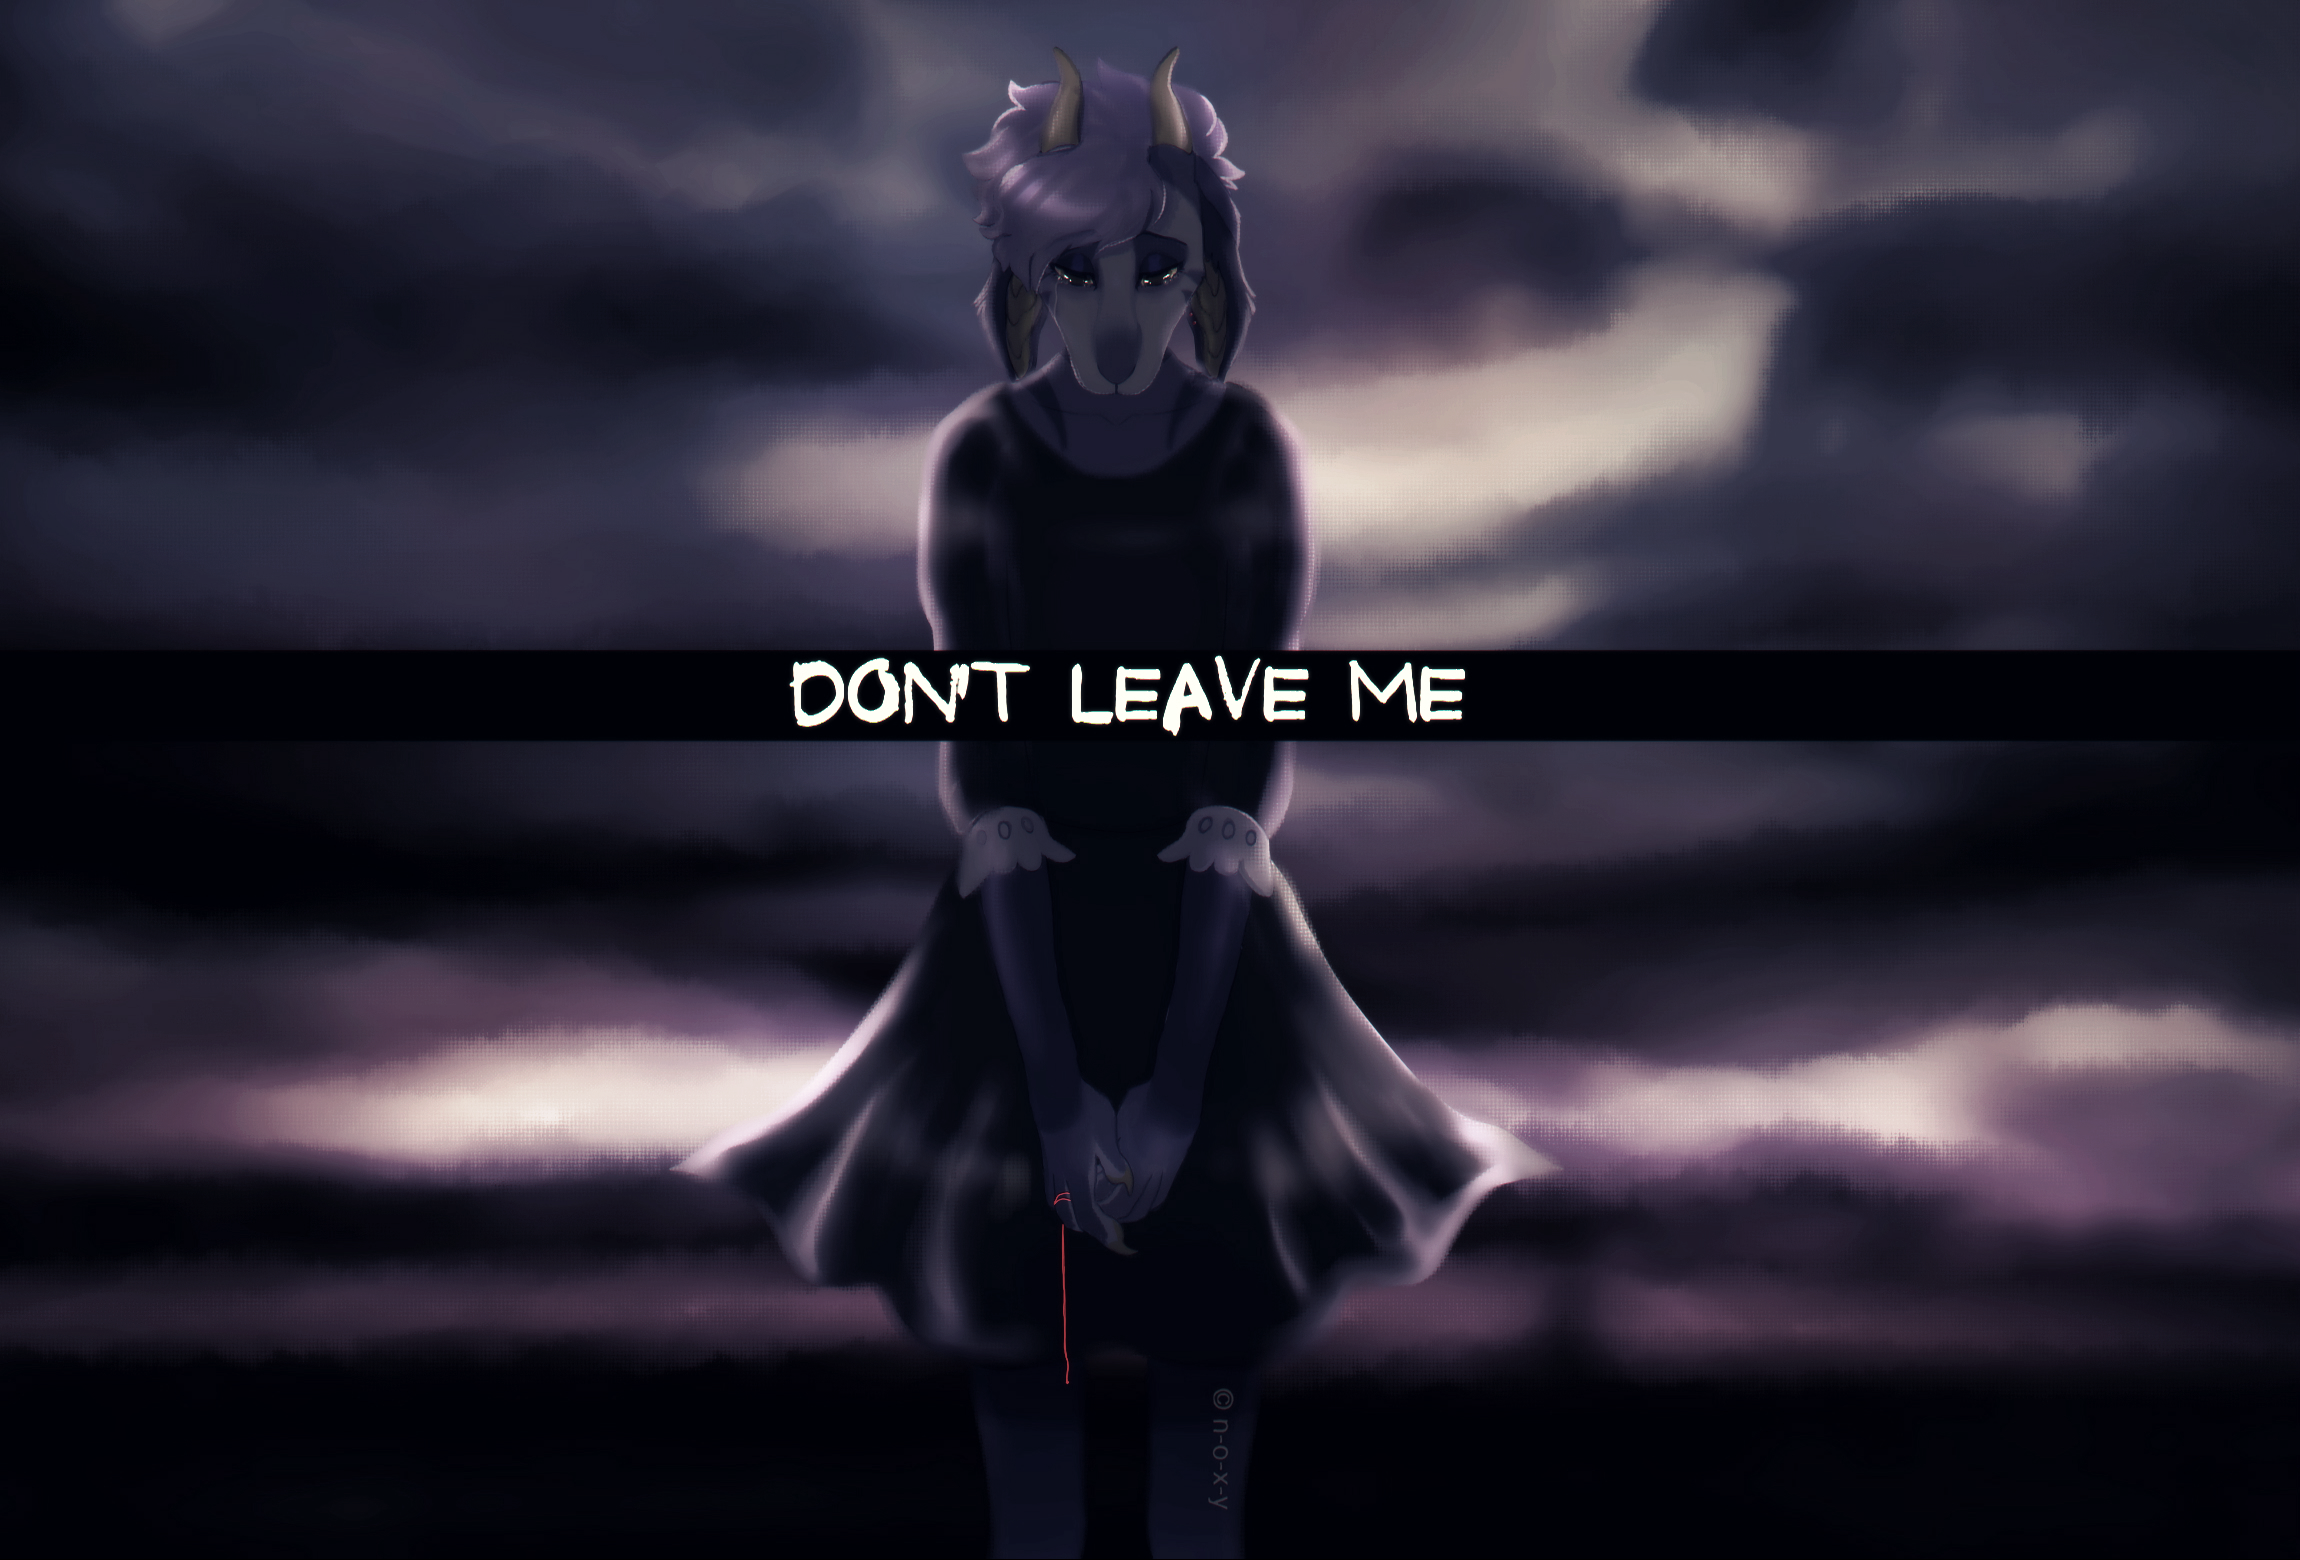 Don't go by N-o-x-y